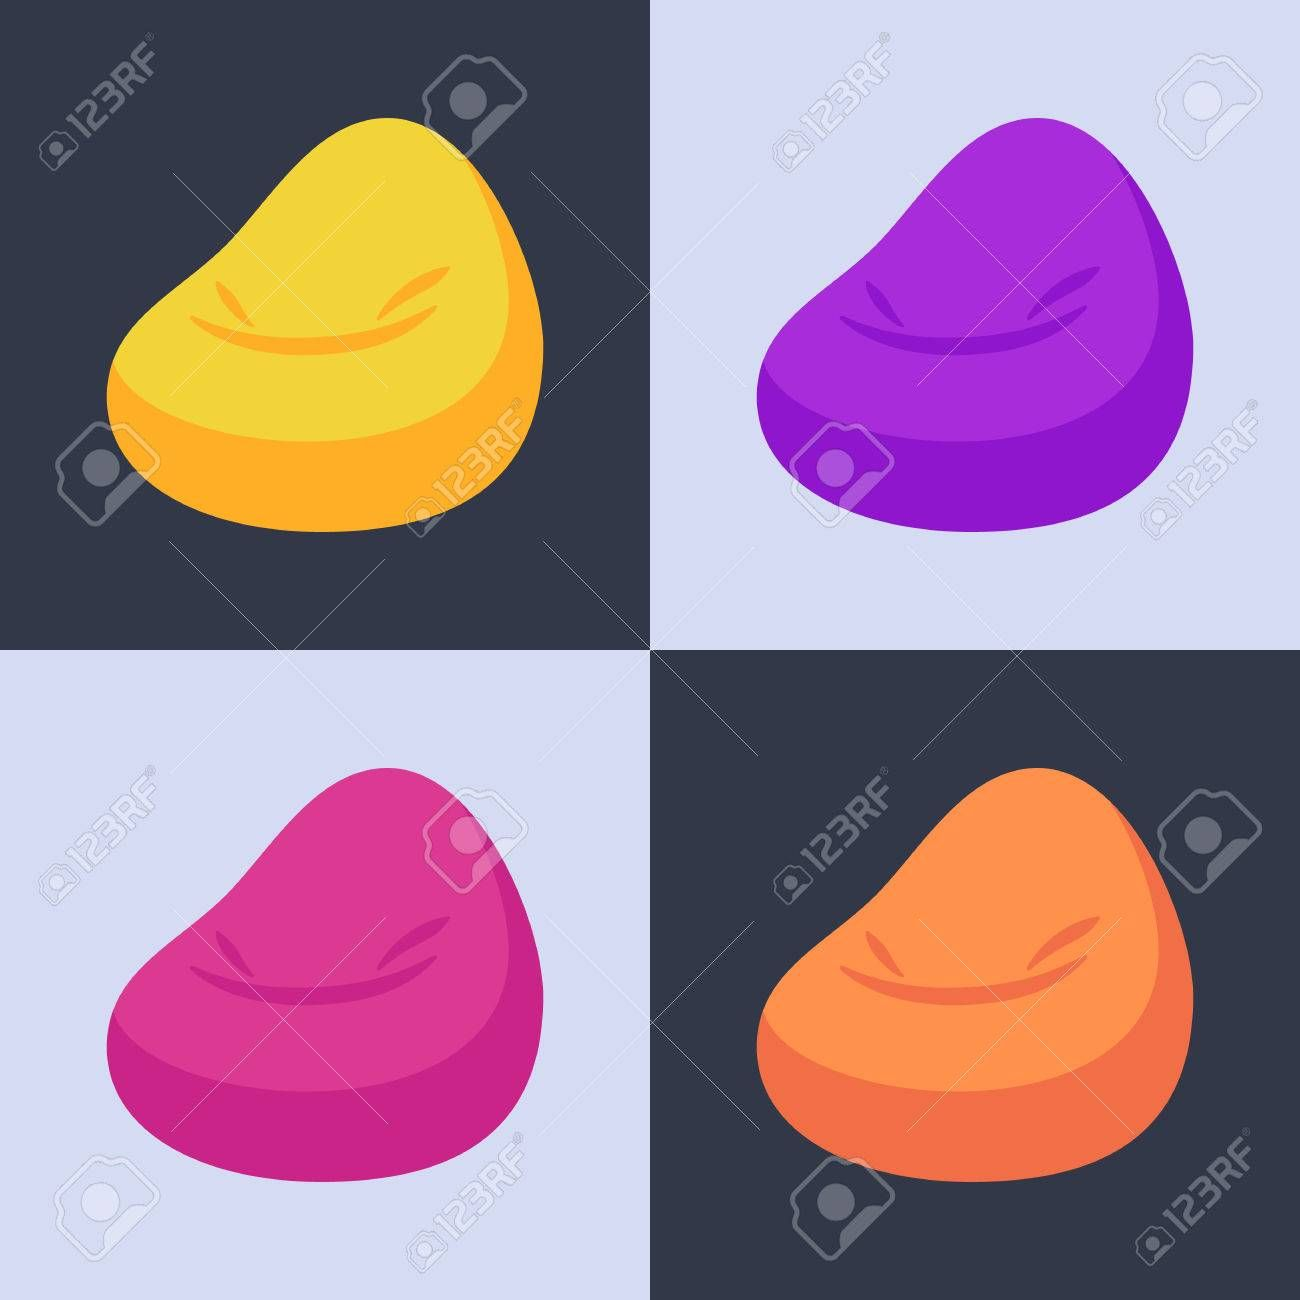 Vector illustration of bean bag chair with 4 color options ,